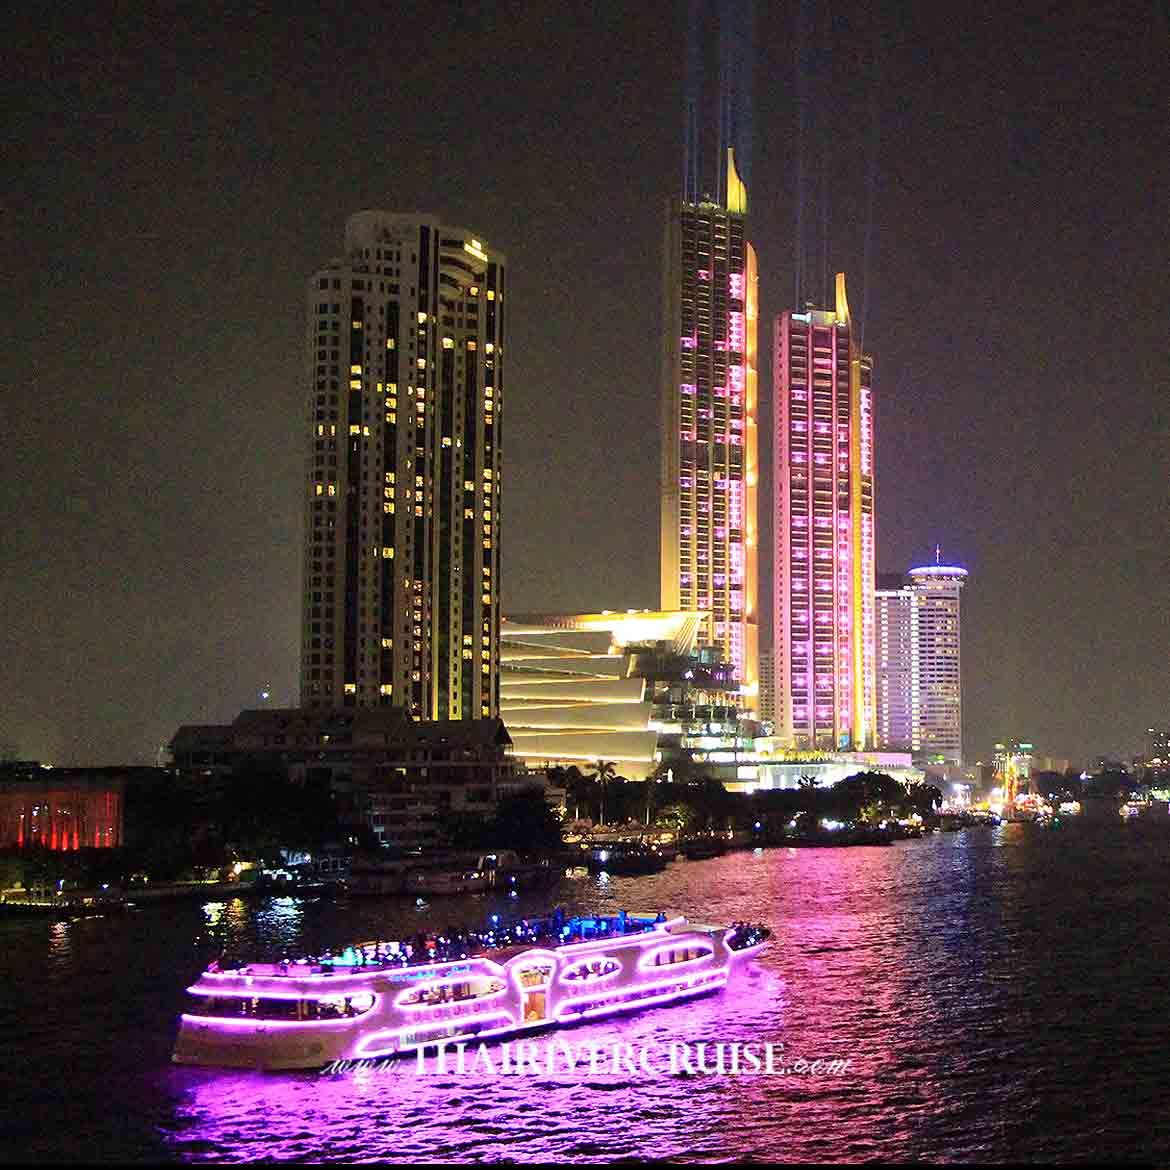 Bangkok New Year EVE 2021 River Cruises  along the Chao Phraya River, Come & enjoy to see on Countdown night on Tuesday 31, December 2019